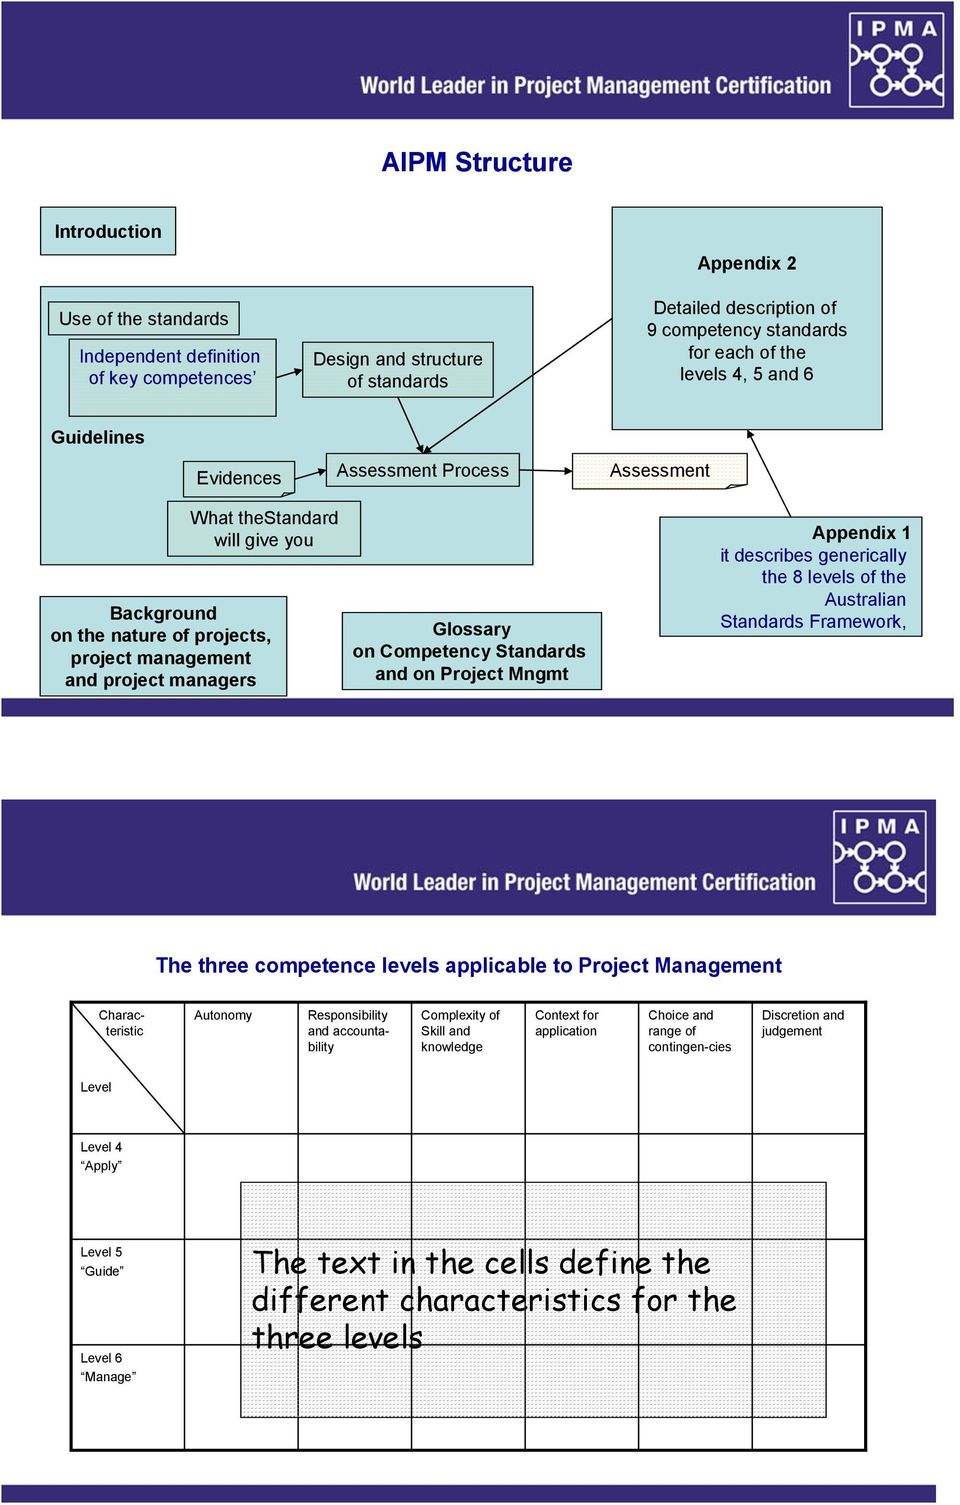 Competency Standards and on Project Mngmt Appendix 1 it describes generically the 8 levels of the Australian Standards Framework, The three competence levels applicable to Project Management